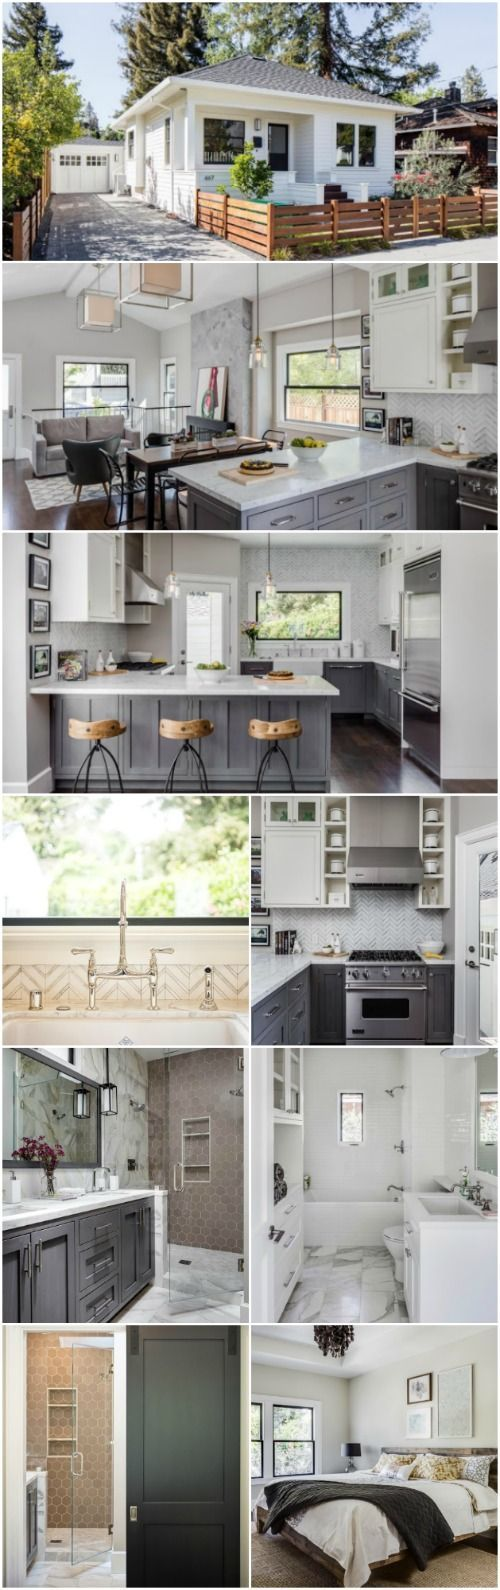 Californian interior designer designs dreamy tiny house in napa valley lindsay chambers has created a